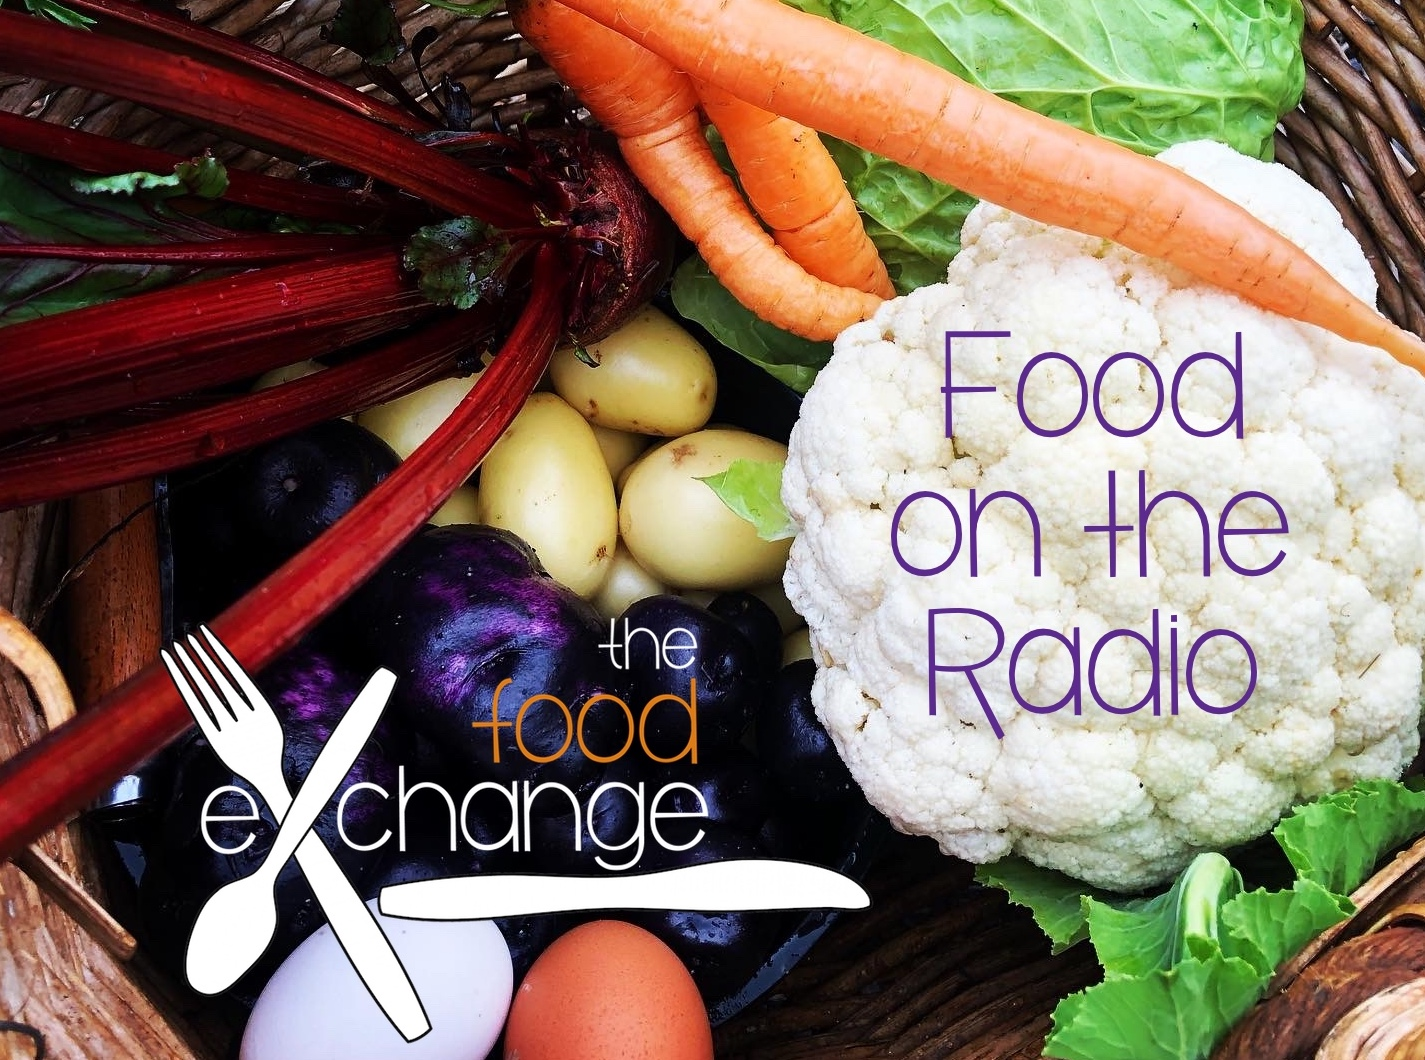 the food eXchange with Cynthia Lim on Seymour FM